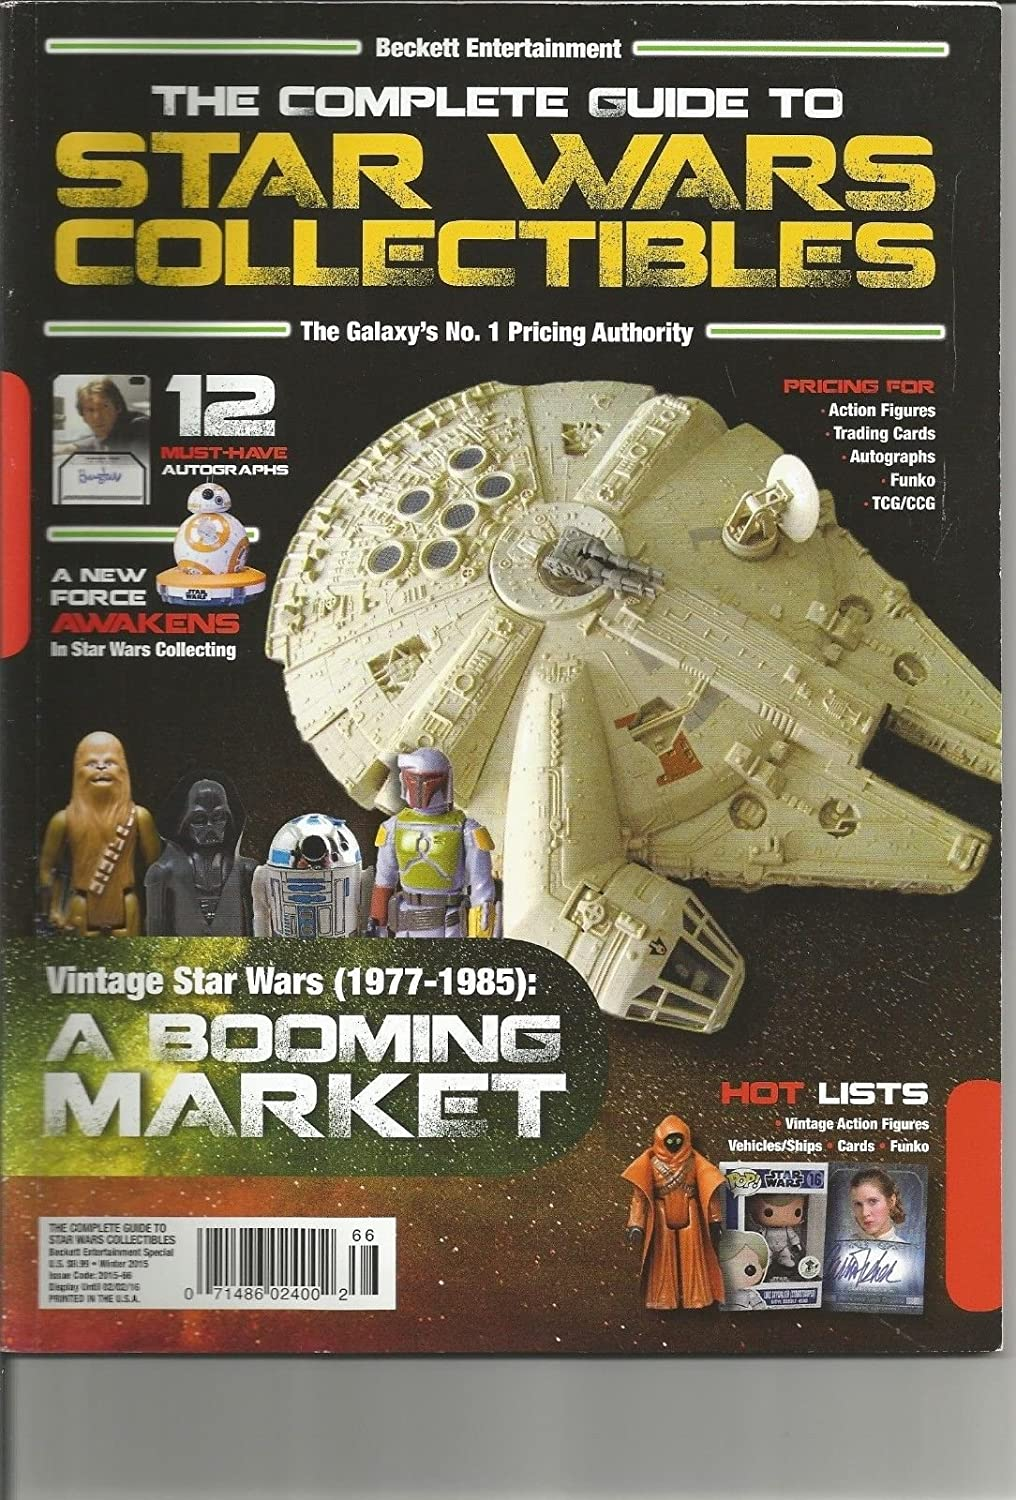 The Complete Guide to Star Wars Collectibles